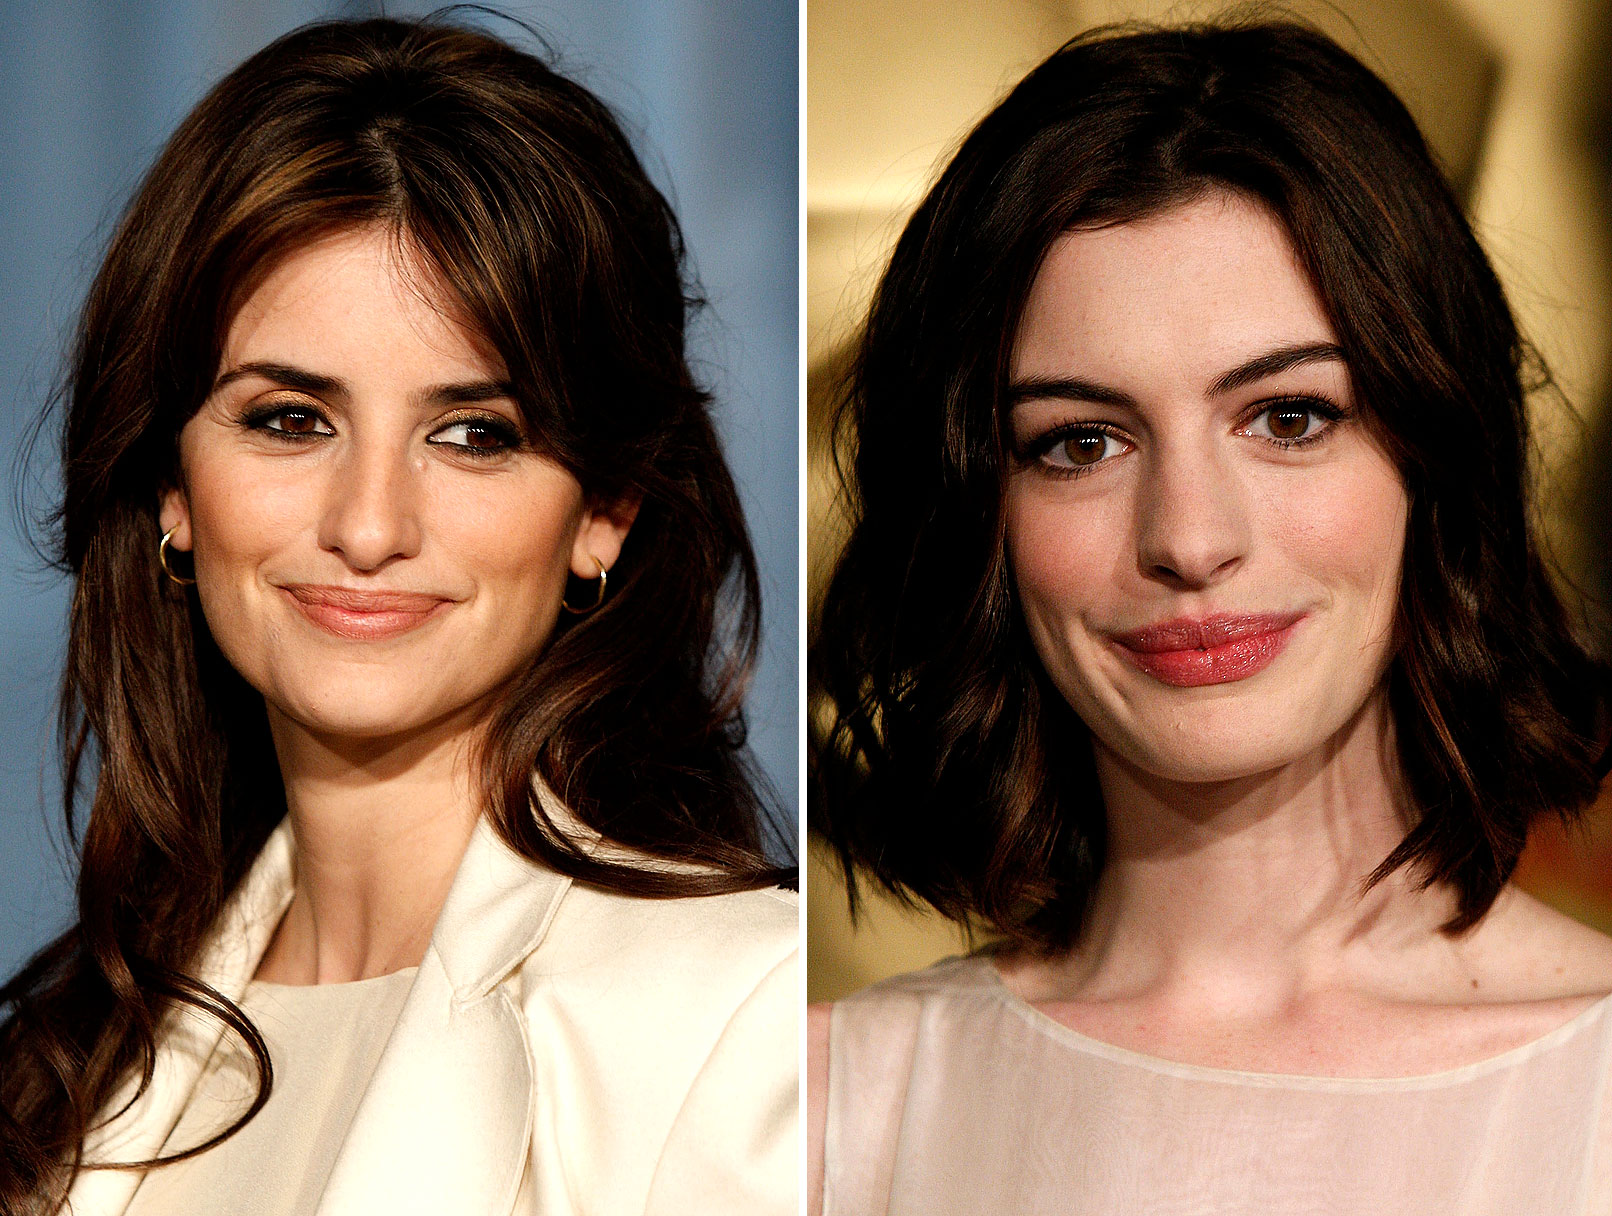 Hathaway and Cruz: Oscar Stars Align at Tower Bar